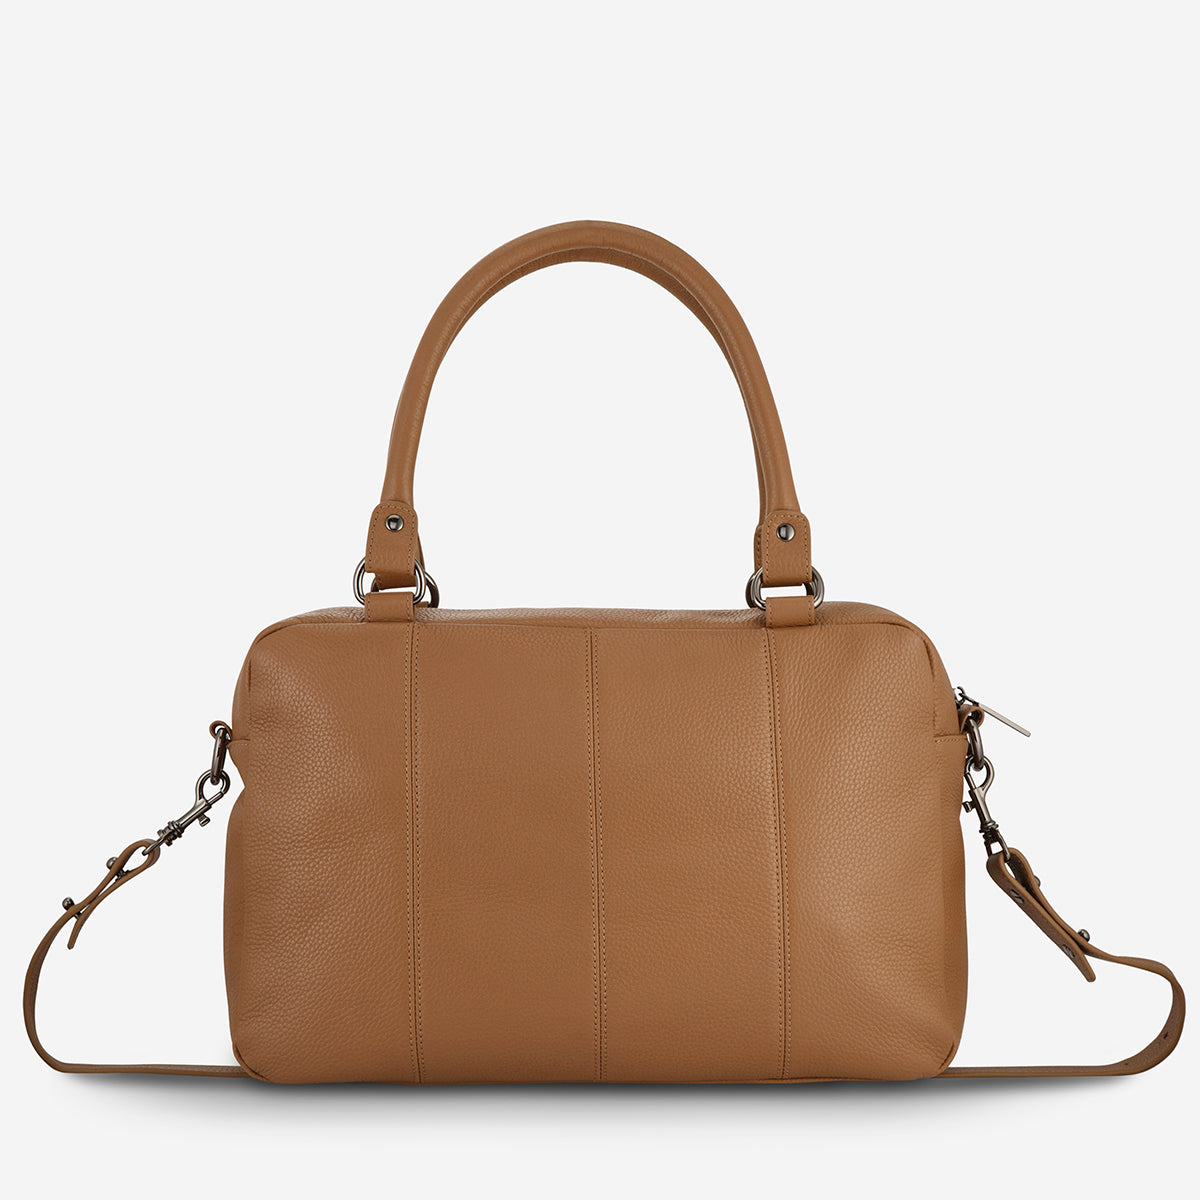 Status Anxiety War With Obvious Women's Leather Bag Tan